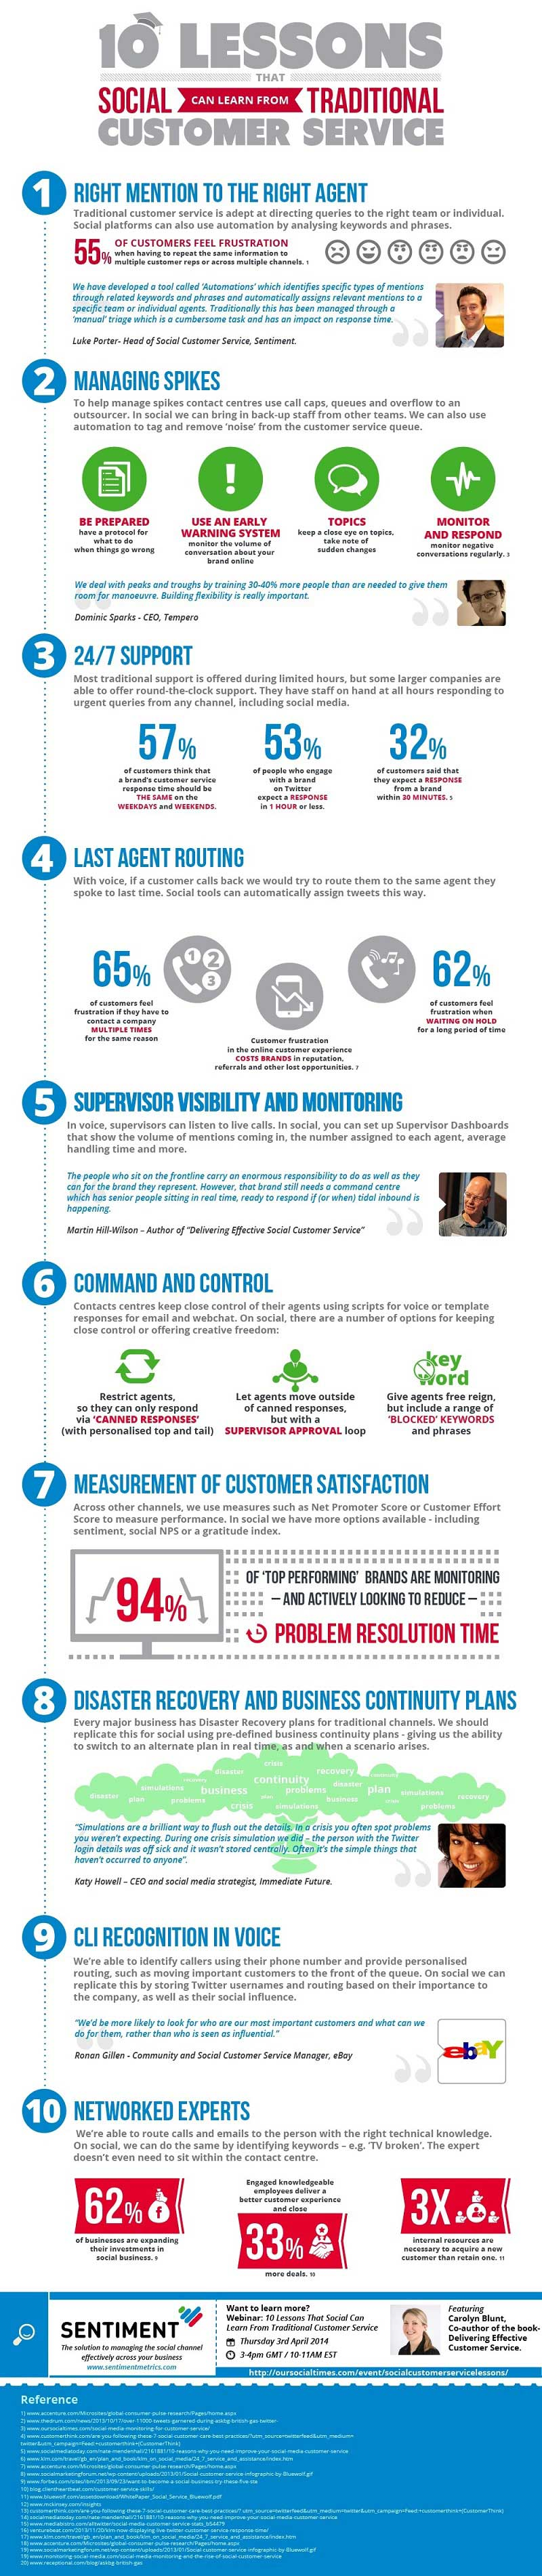 10 Lessons That Social Can Learn From Traditional Customer Service